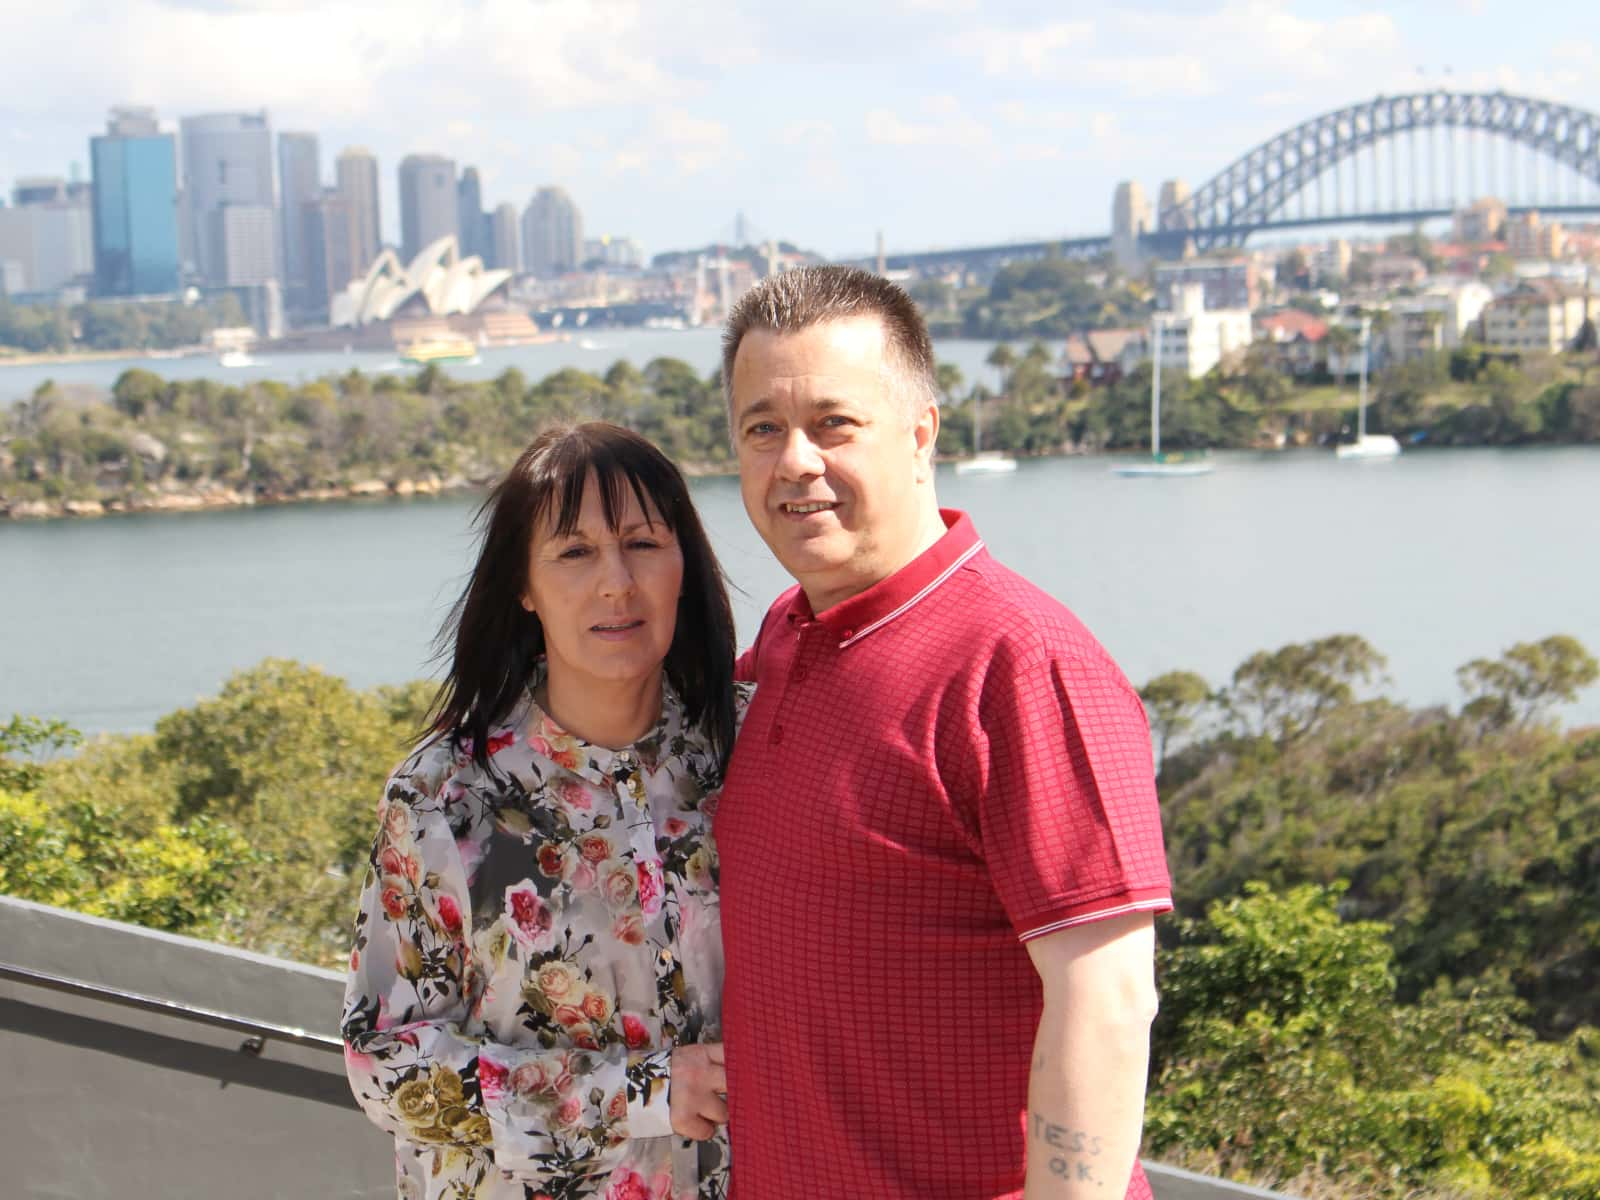 Terence & Gillian from South Shields, United Kingdom